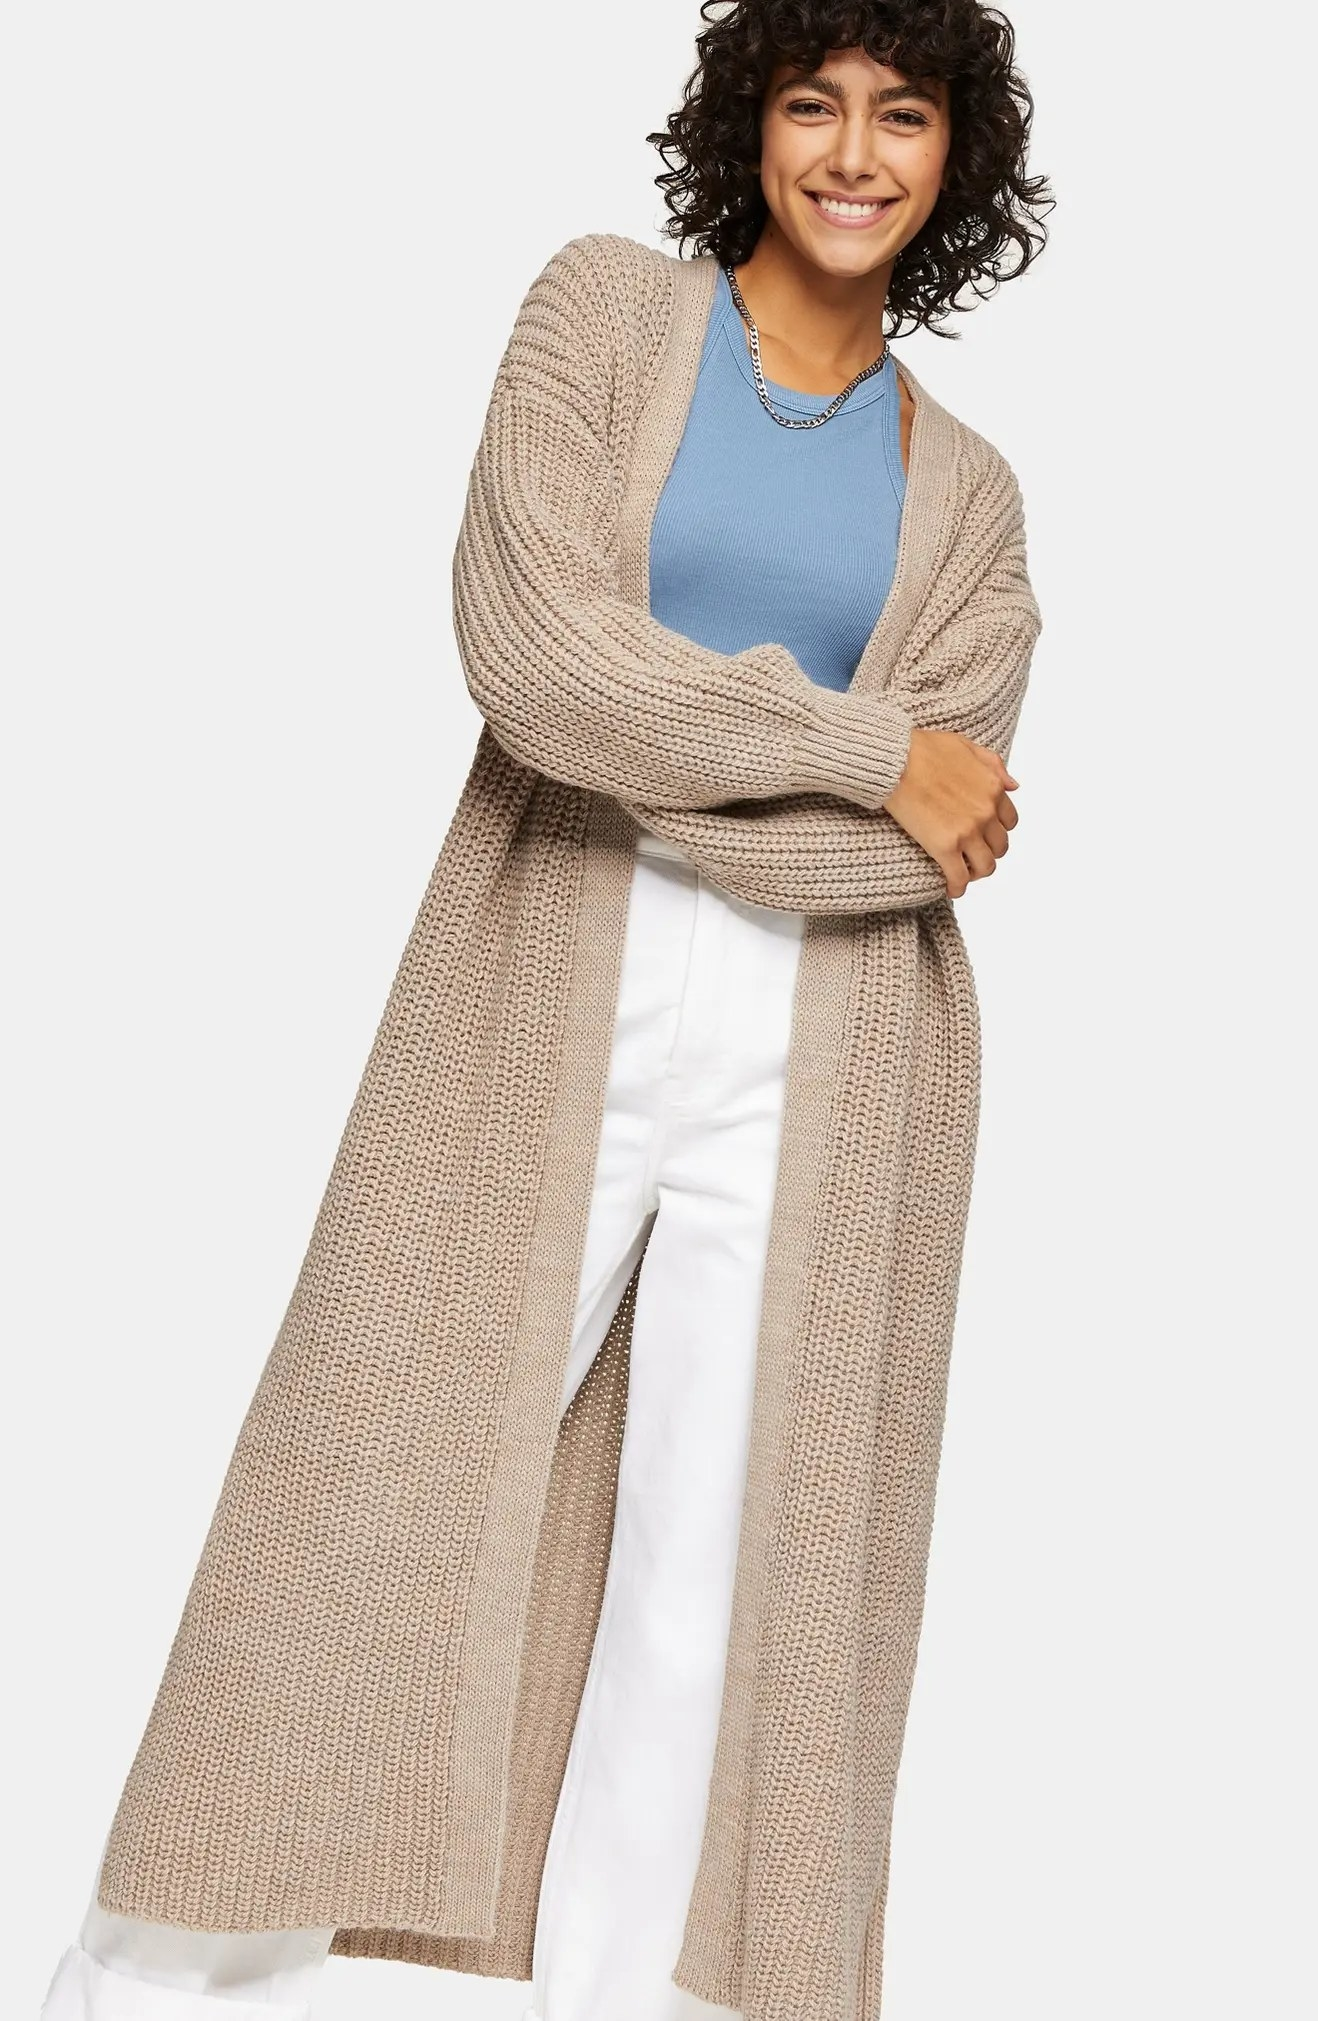 The cardigan worn by a smiling model